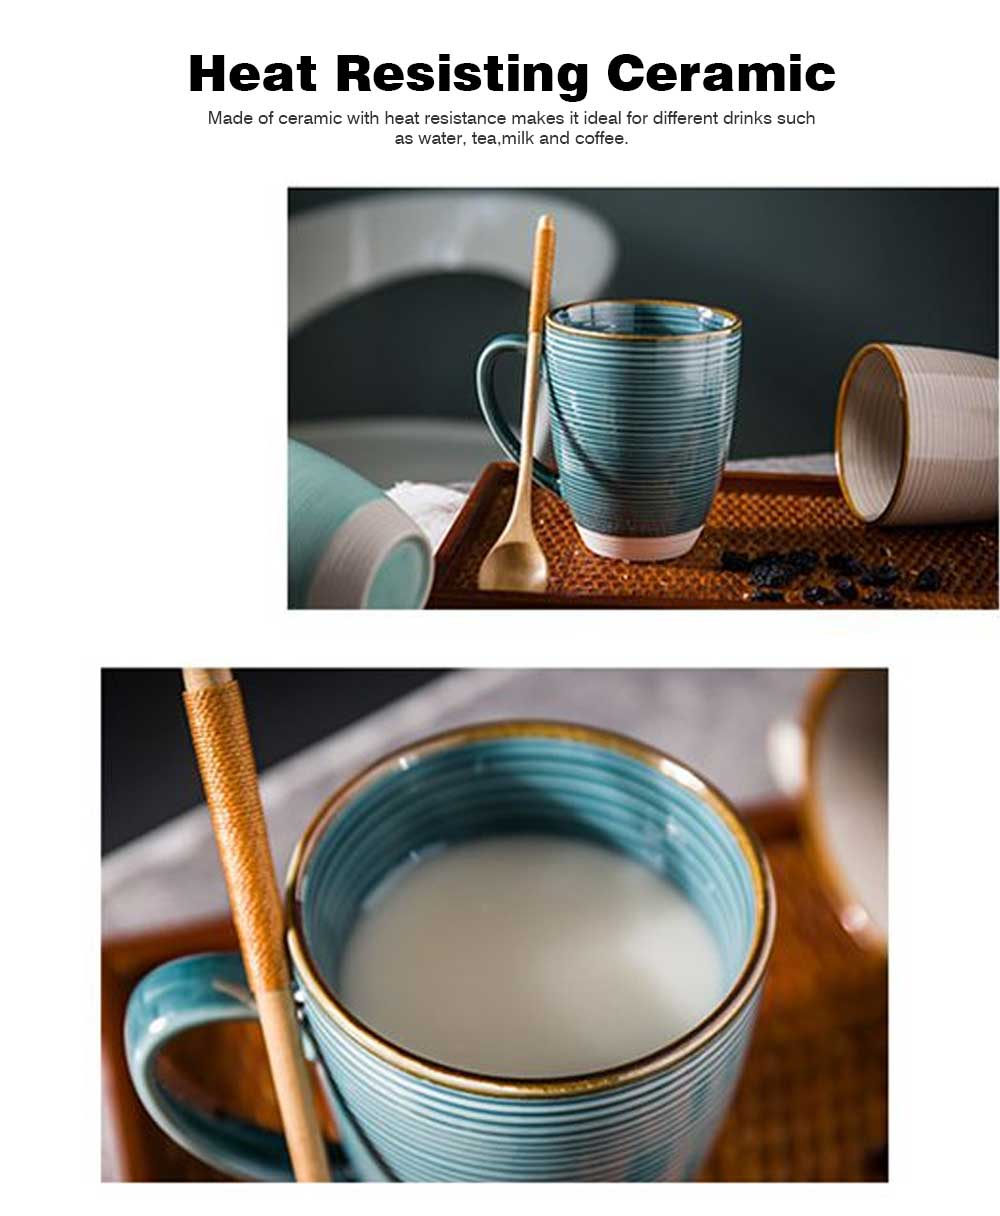 Ceramic Mug Cup with Glaze for Tea, Milk, Coffee, Water, Breakfast Cup for Cereal, Fashionable Water Mug for Home and Office 2